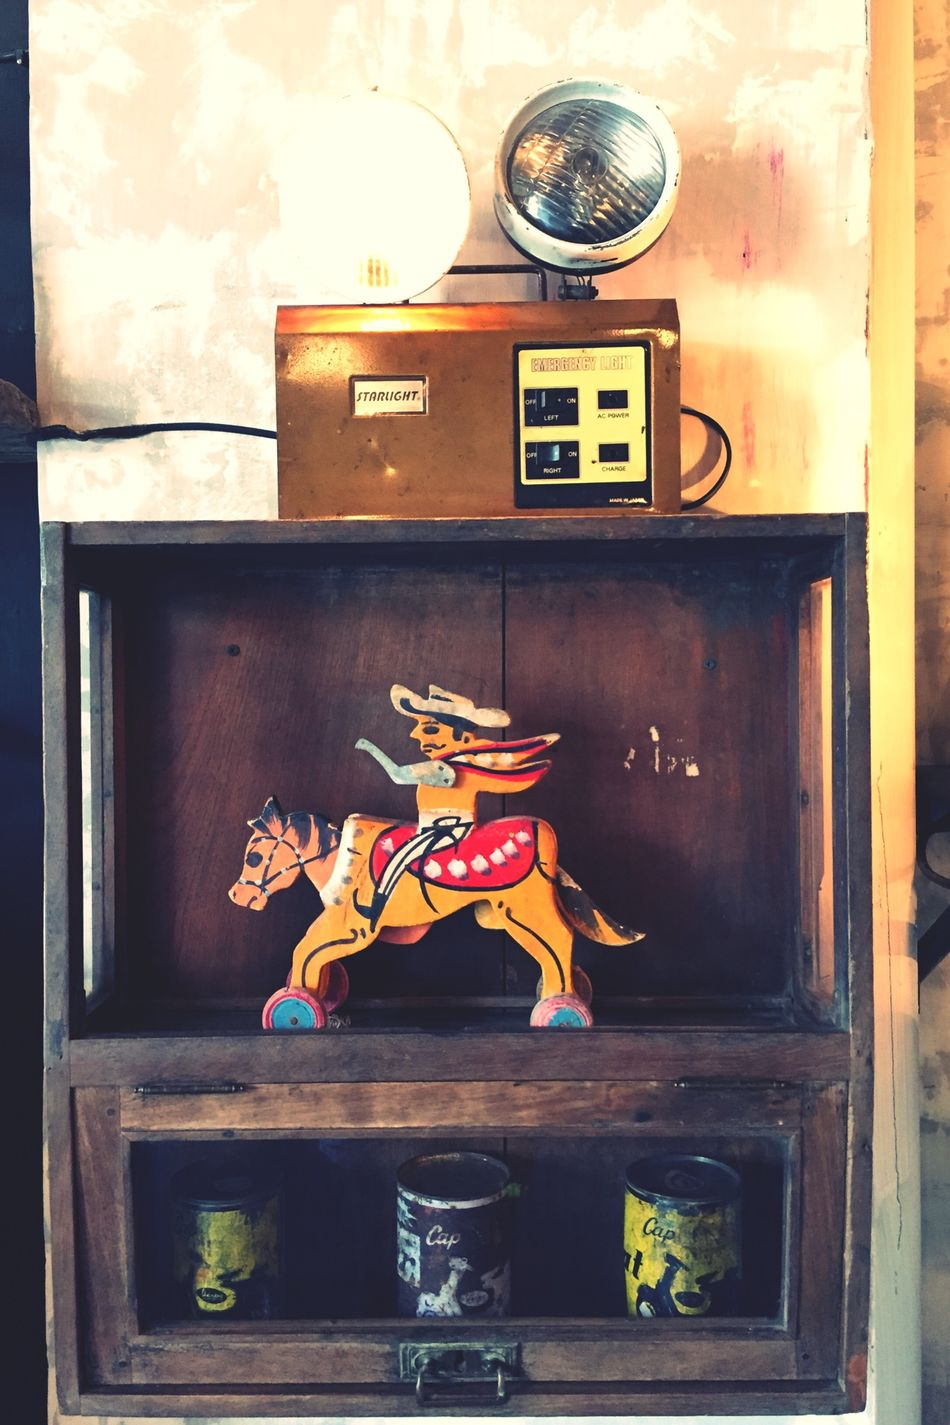 Throwback into my Chillhood , the Classictoys , Woodtoys and that so precious!!